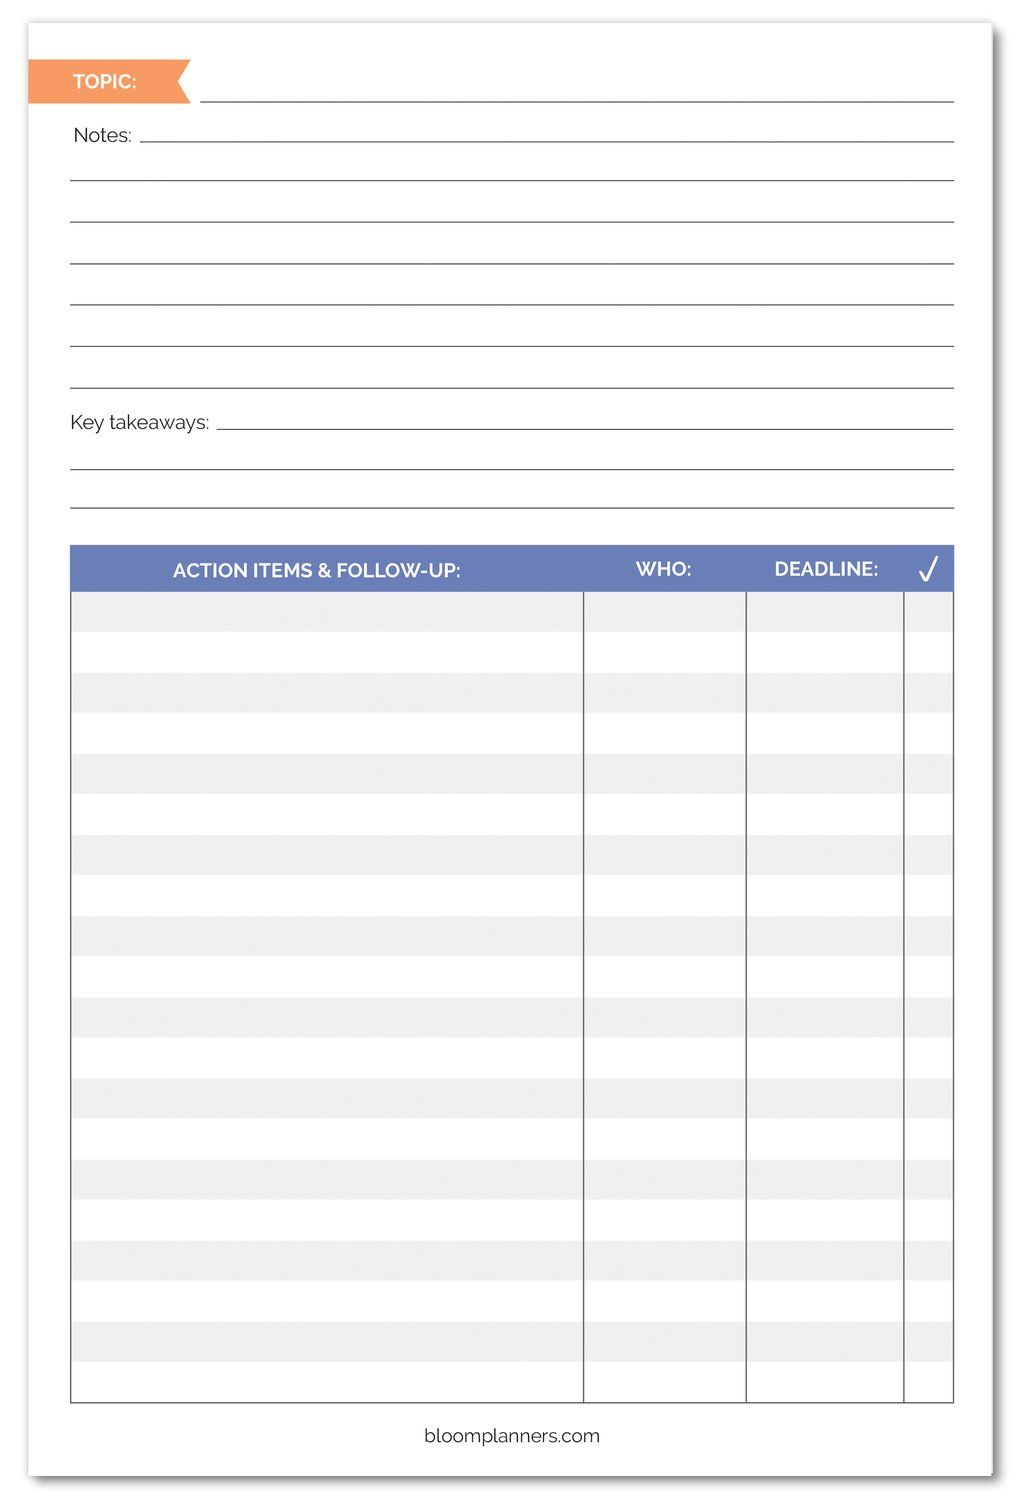 Meeting notes planning pad 6 x 9 meeting notes